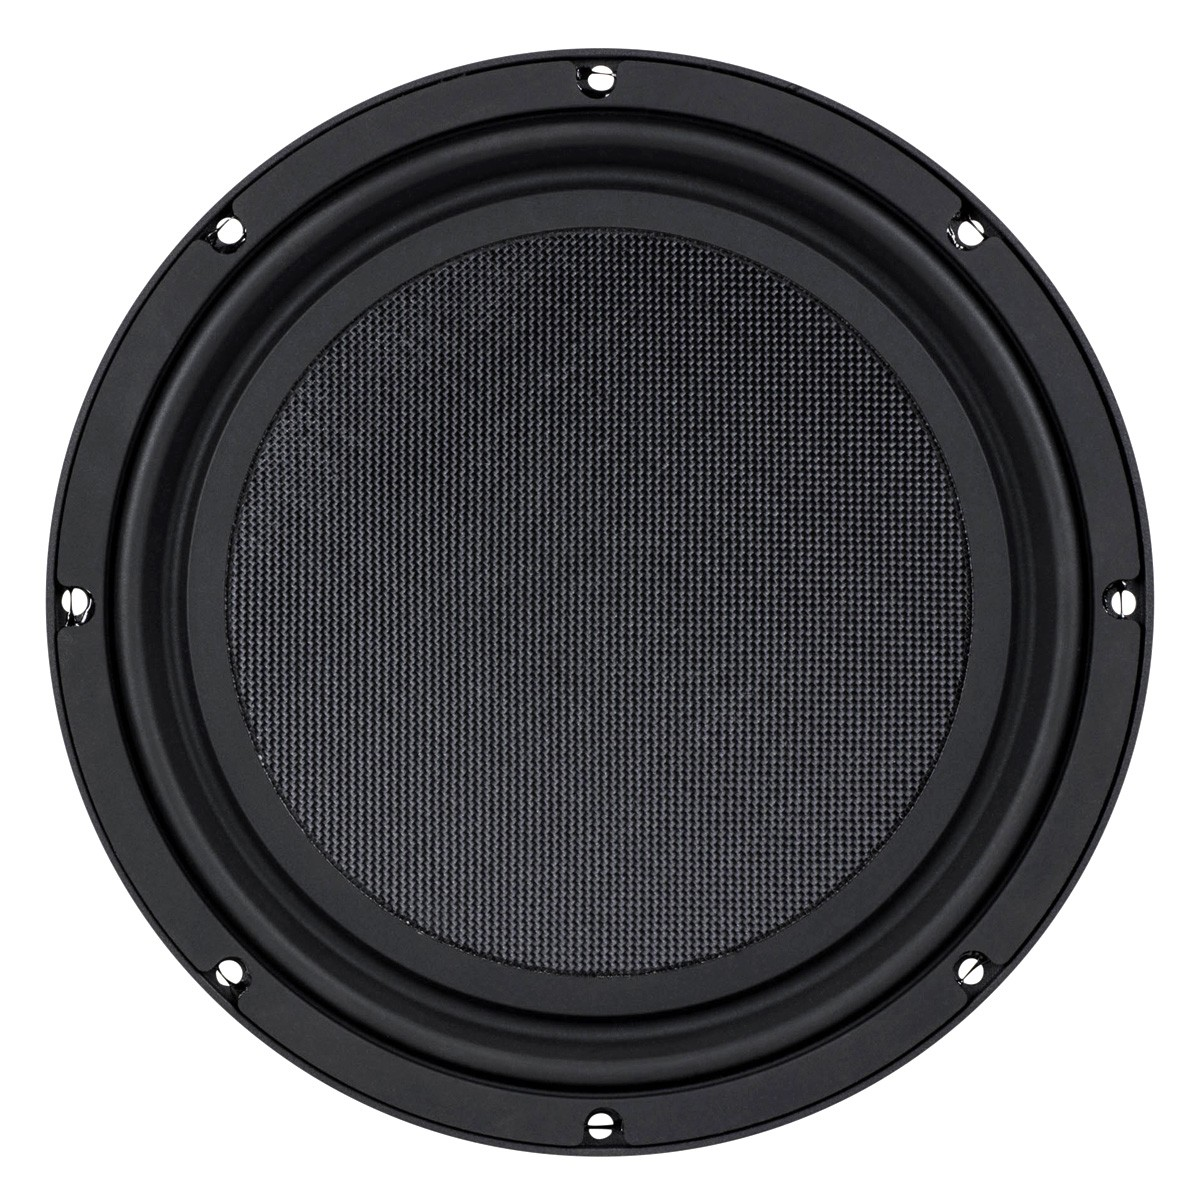 DAYTON AUDIO LS12-44 Haut-Parleur Subwoofer Low Profile Double Bobine 250W 2x4 Ohm 88dB 28Hz - 300Hz Ø 30.5cm